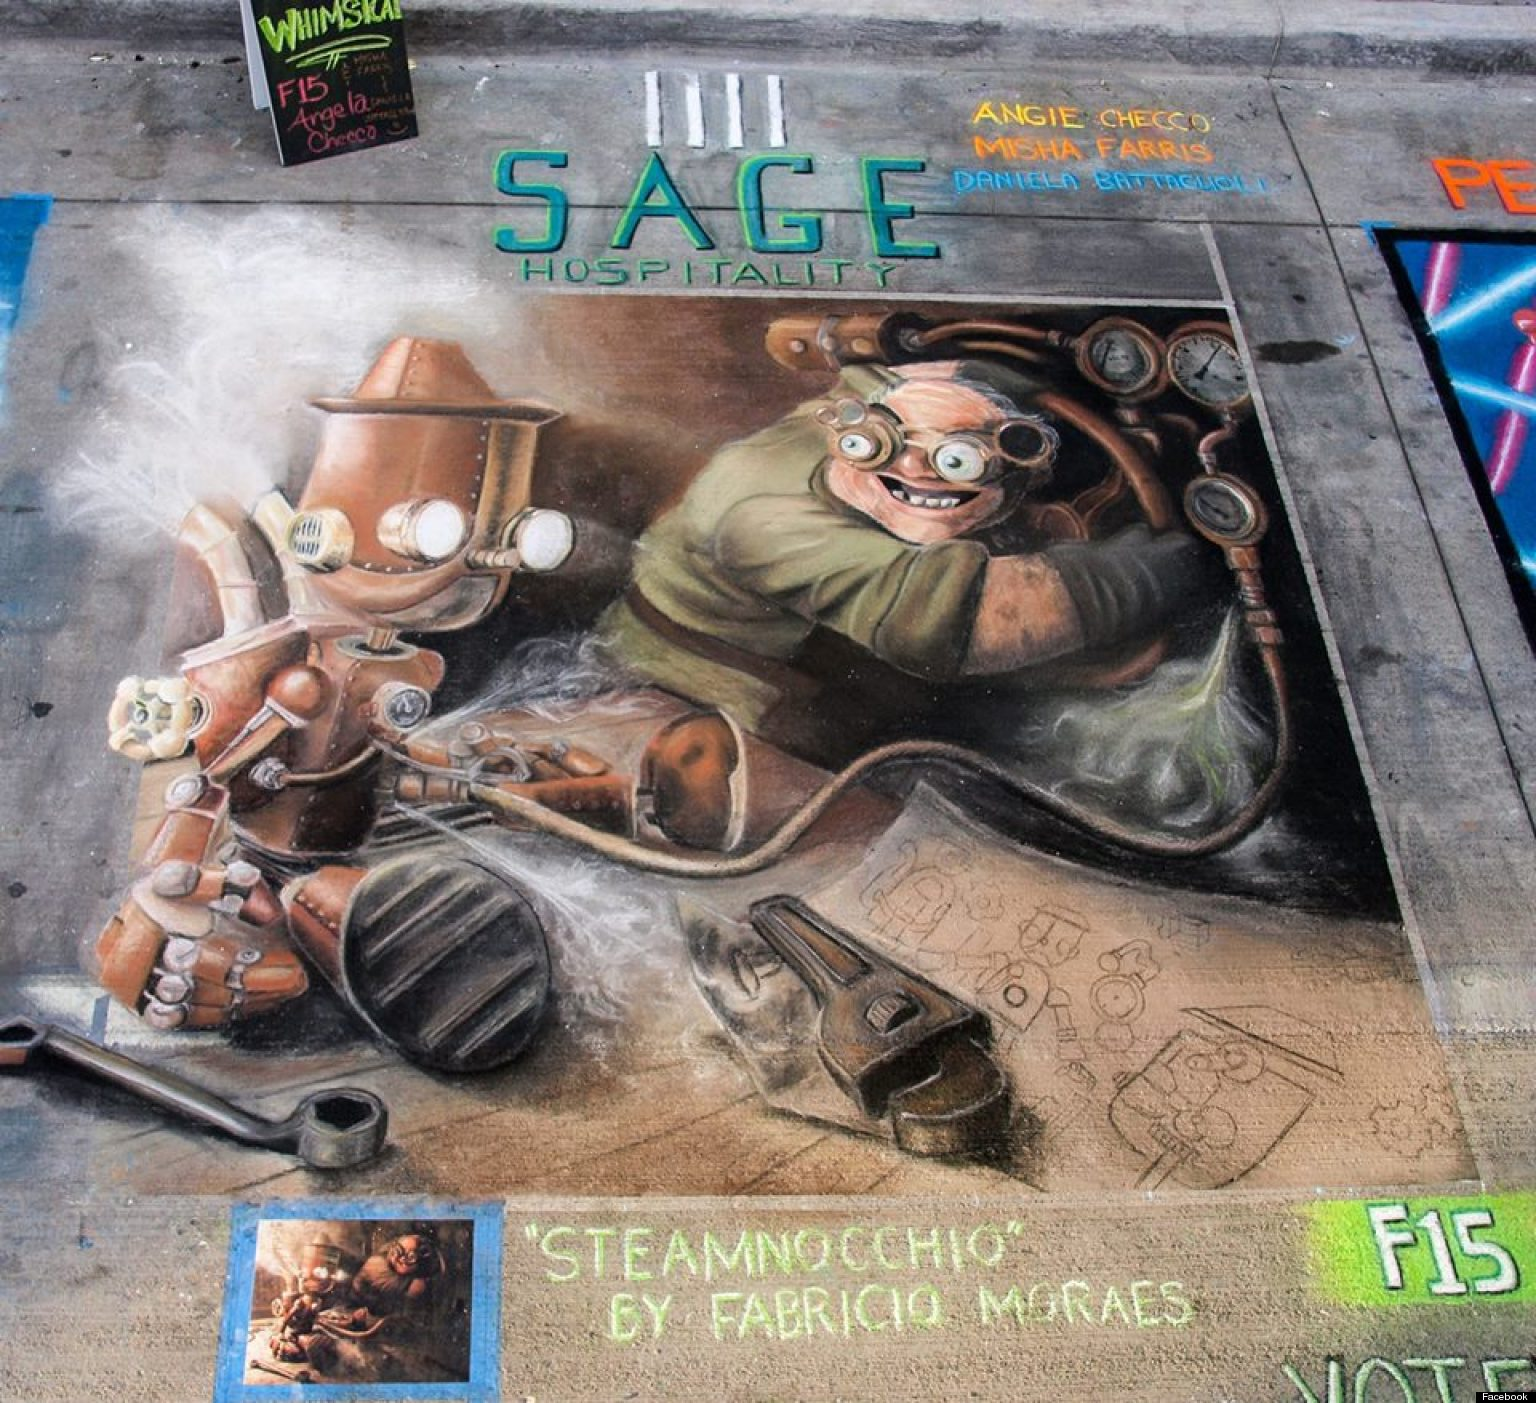 Denver Chalk Art Festival Draws Thousands To Larimer